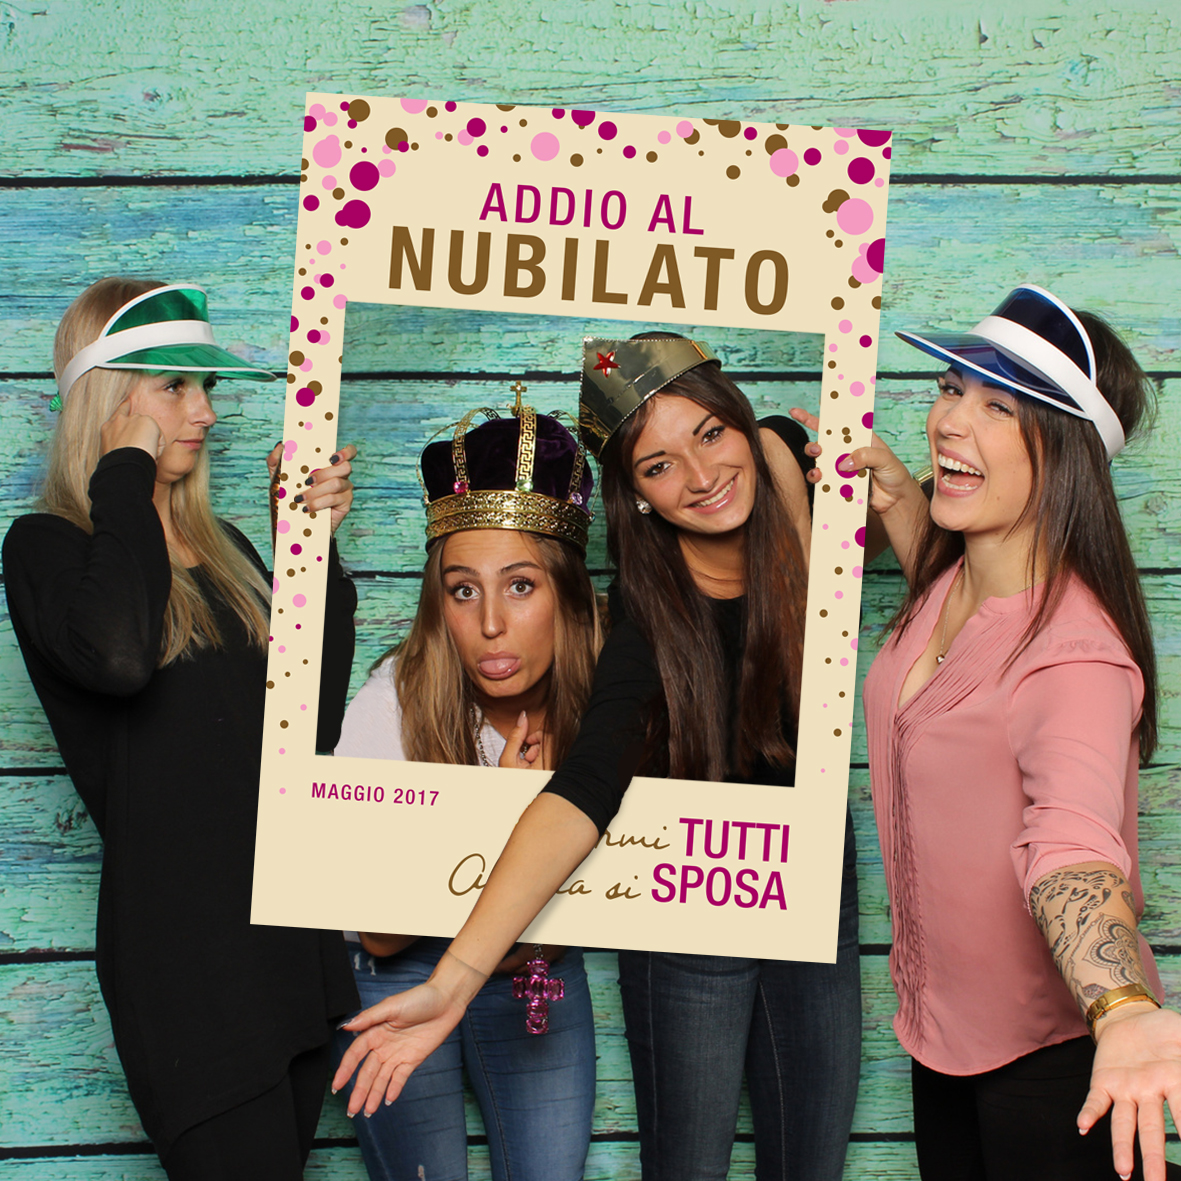 Cornici Photo Booth Fai Da Te Cornice Photo Booth Addio Al Nubilato Sceglila Su Picmee